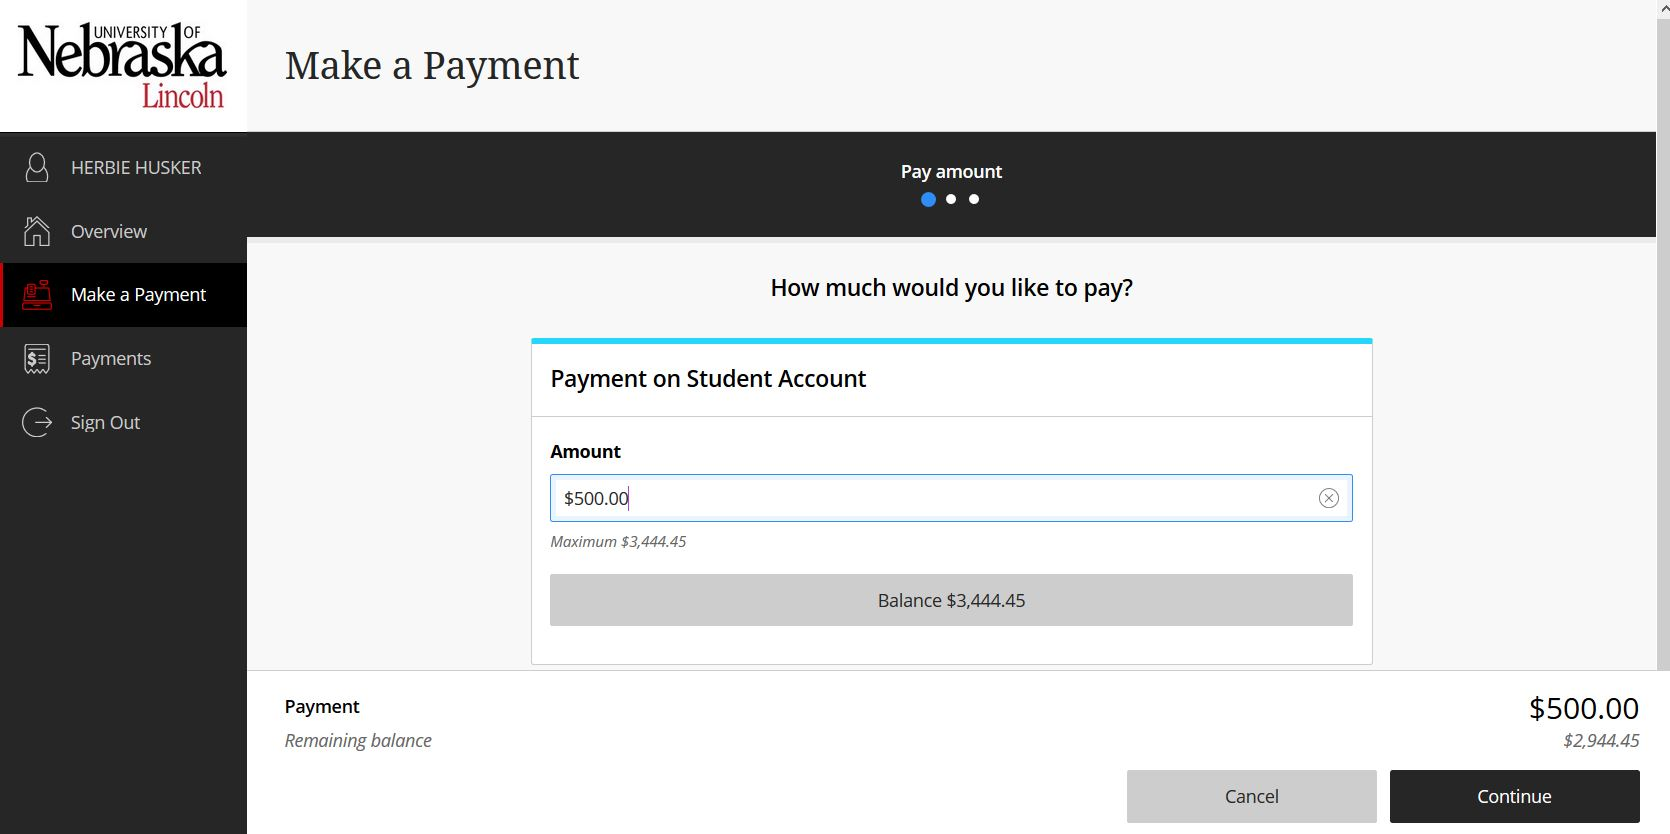 Make a payment screen, showing continue button on lower right